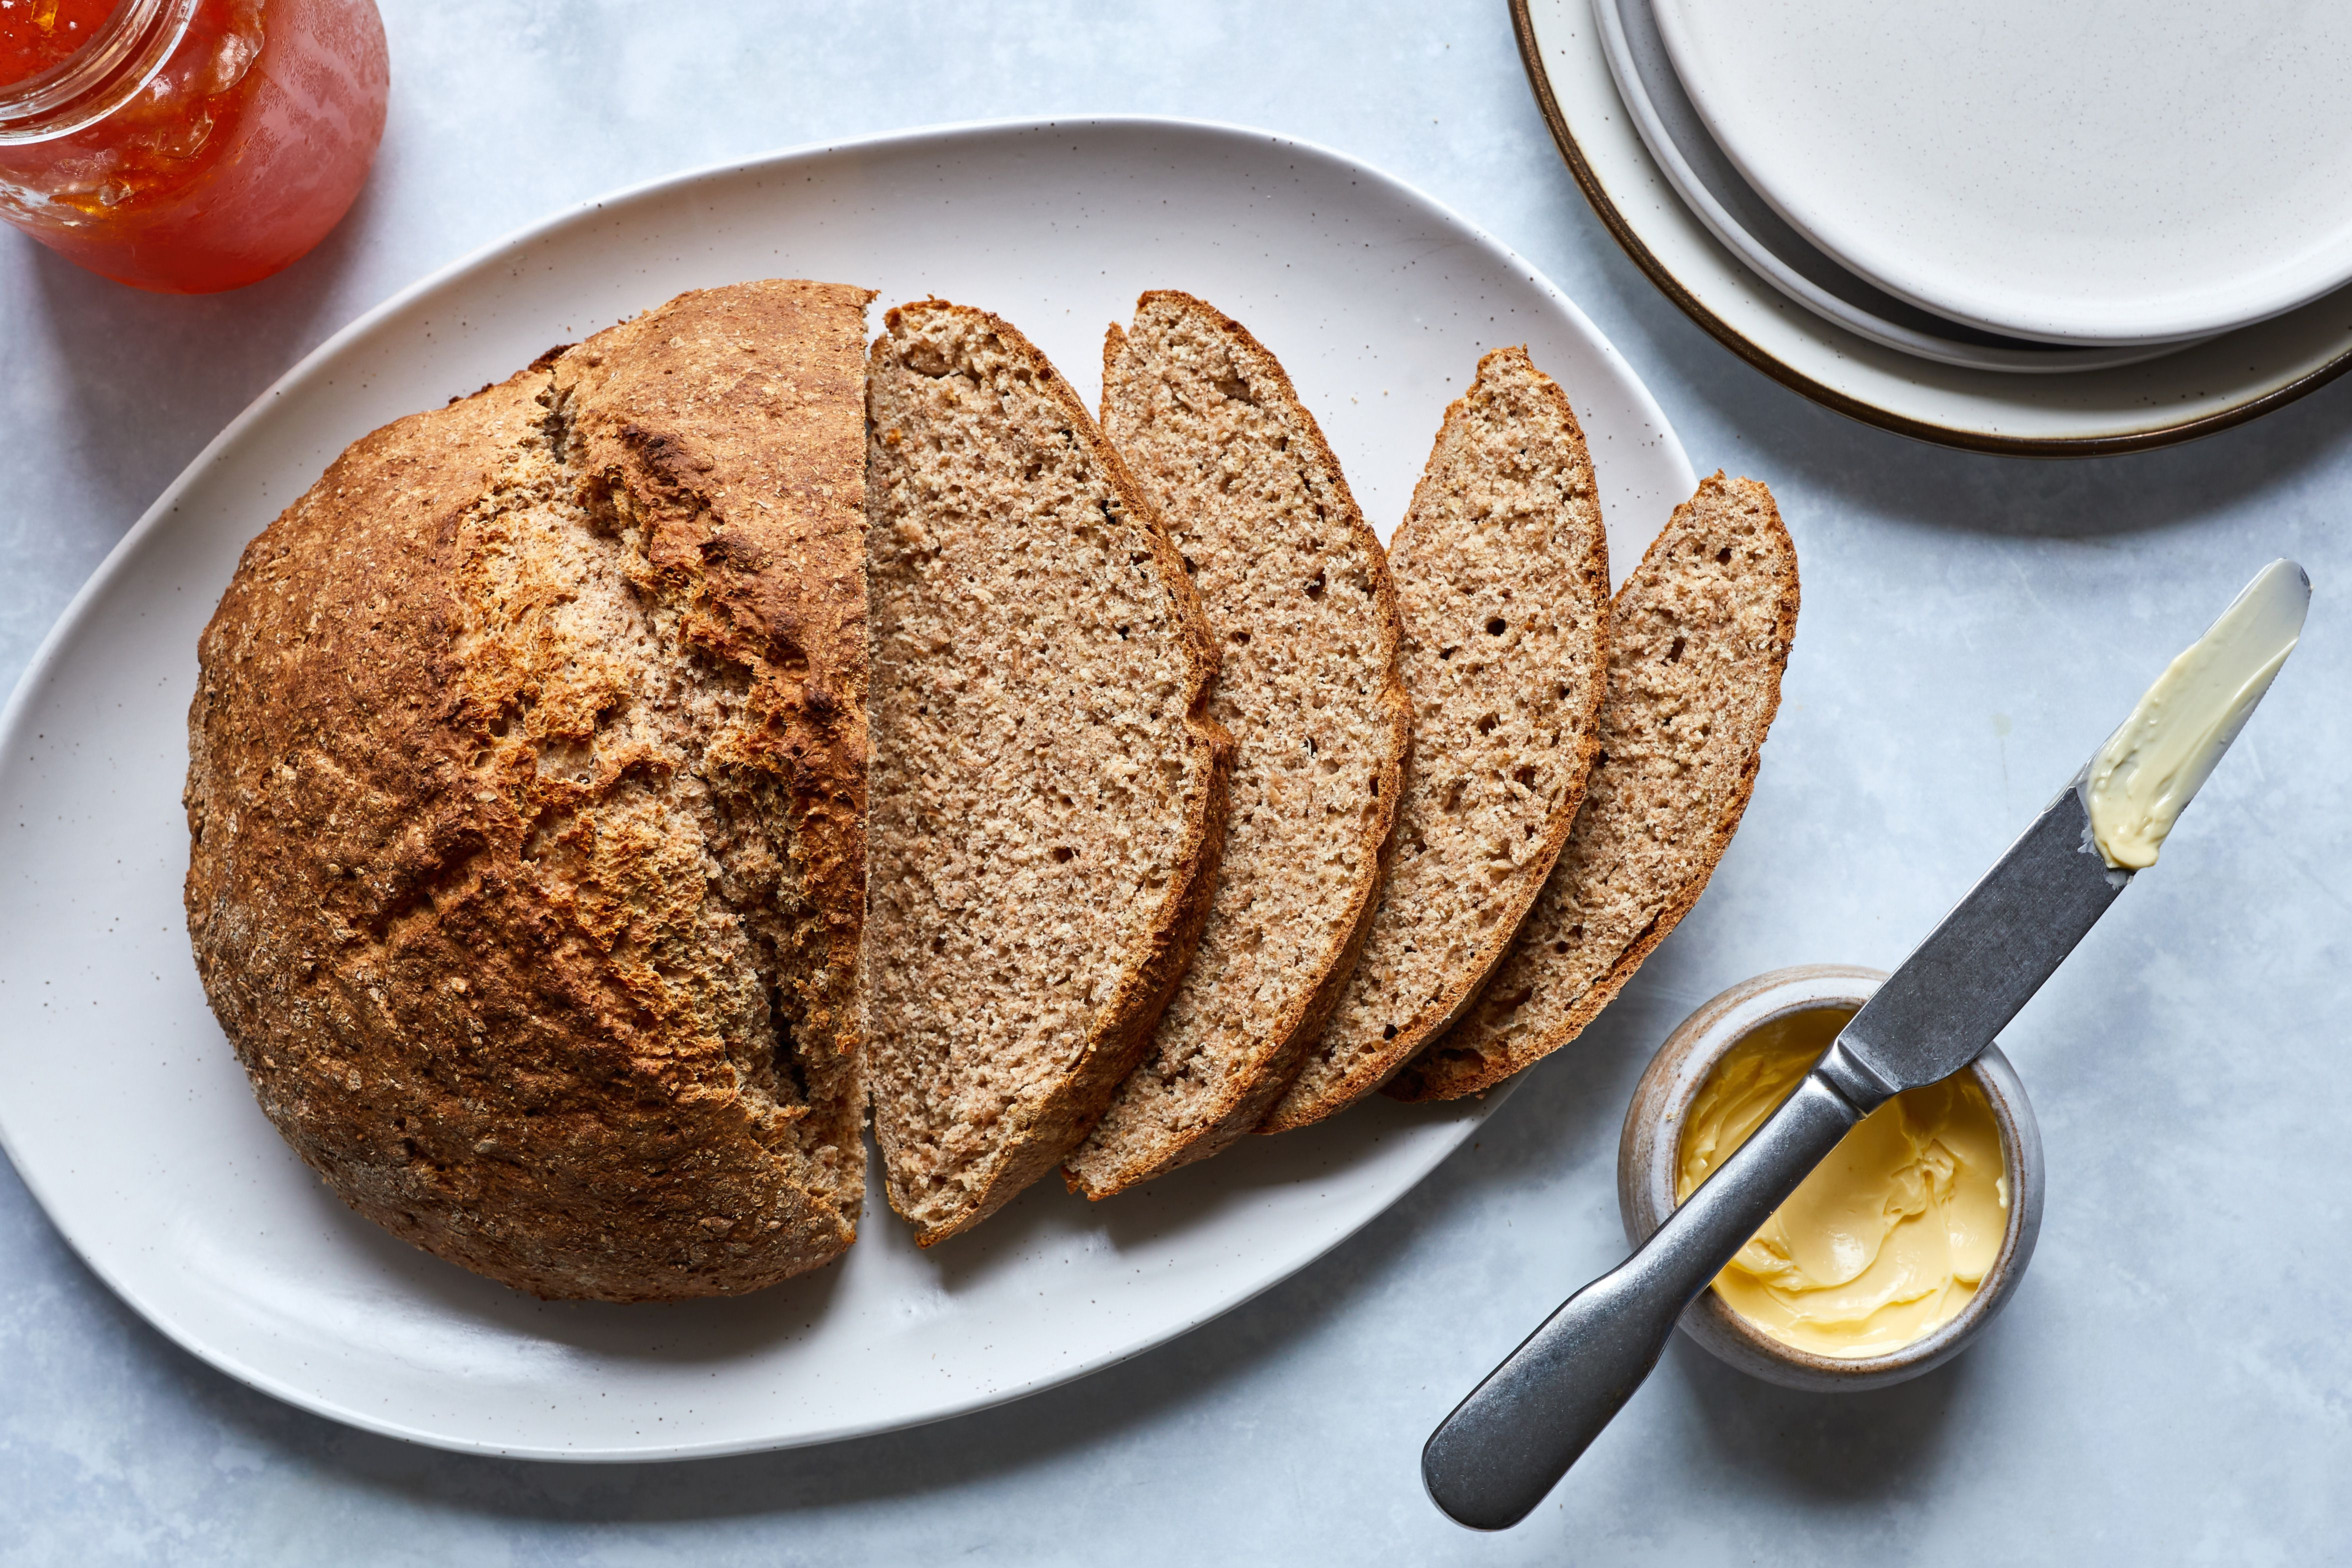 Sugar in Bread: What You Need to Know